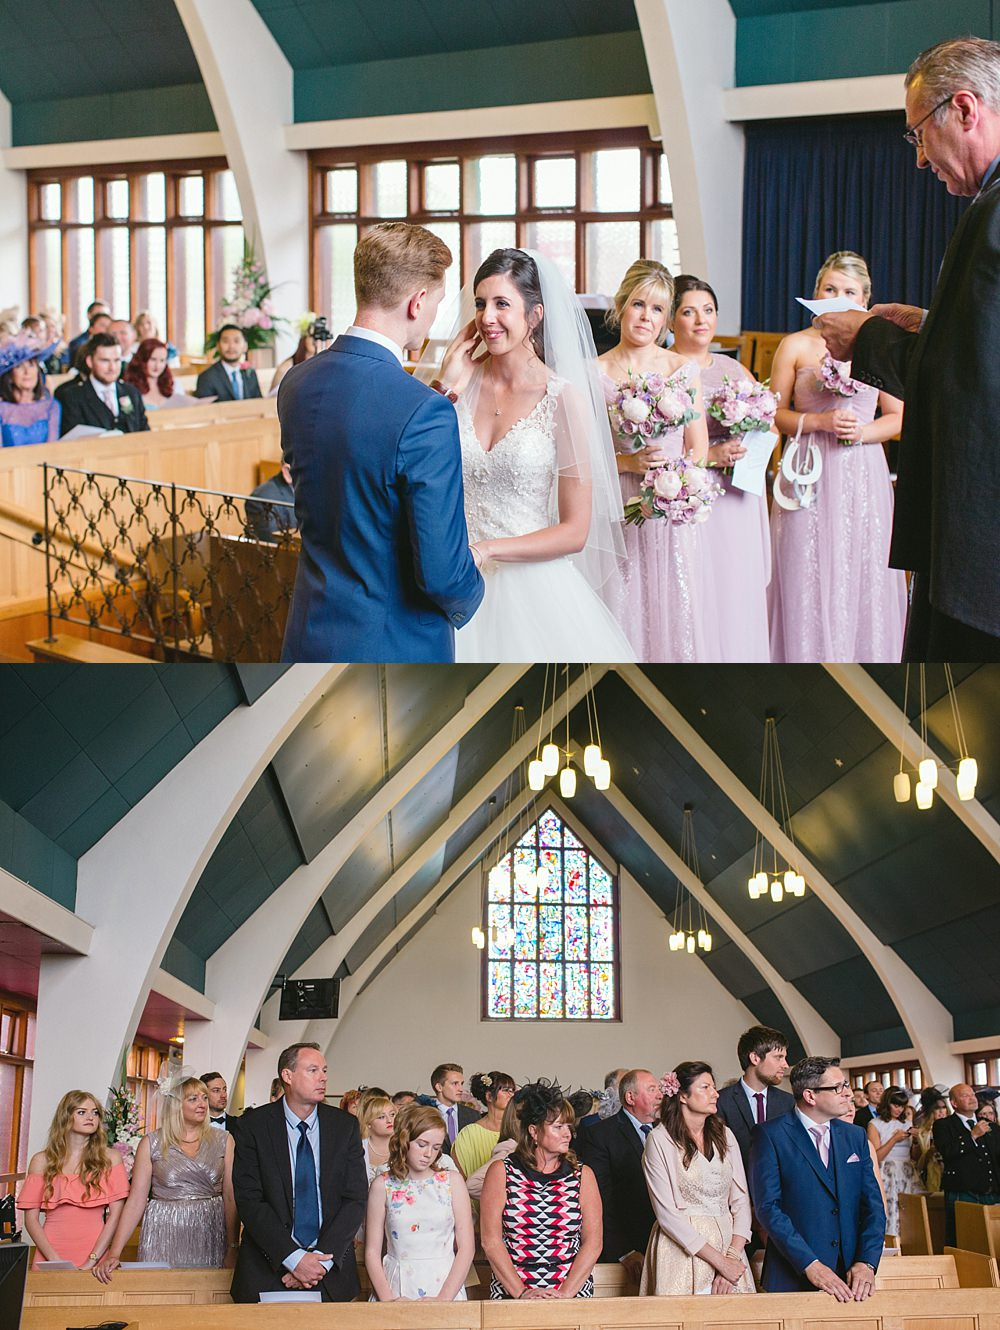 wedding-newton-mearns-glenbervie-28-12